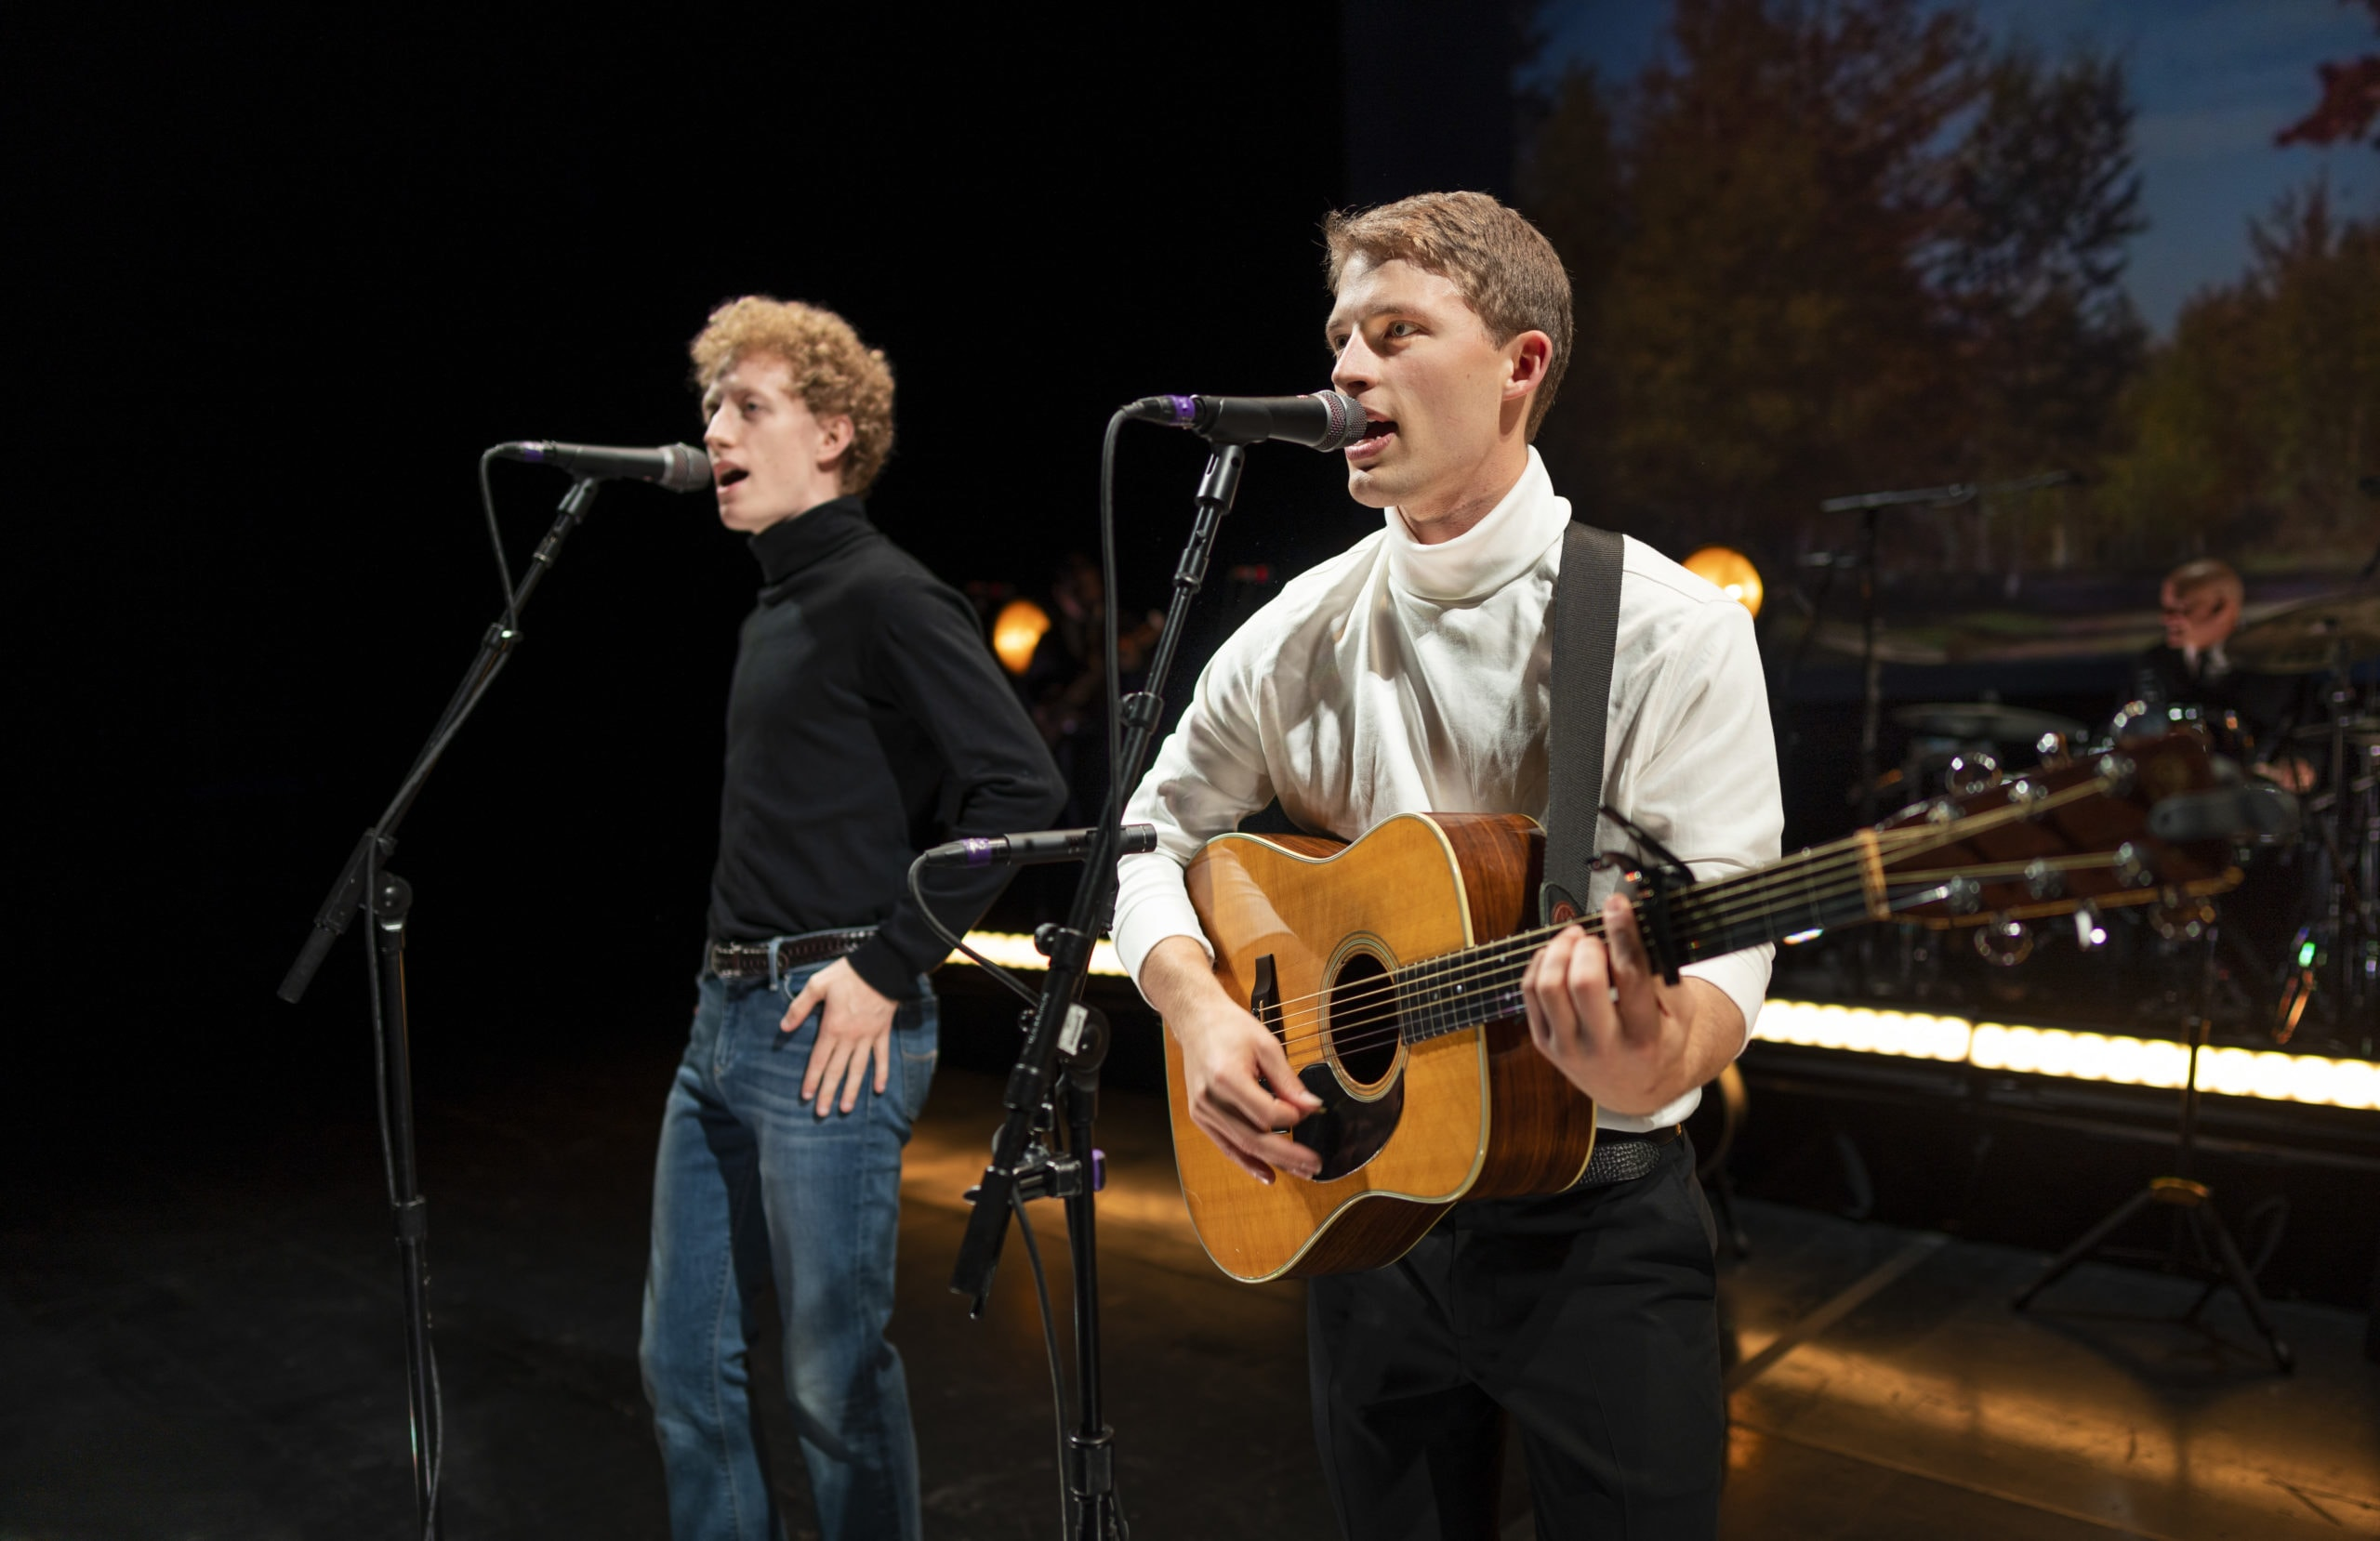 Ben Cooley as Art Garfunkel and Taylor Bloom as Paul Simon in 'The Simon and Garfunkel Story.' Photo by Lane Peters.